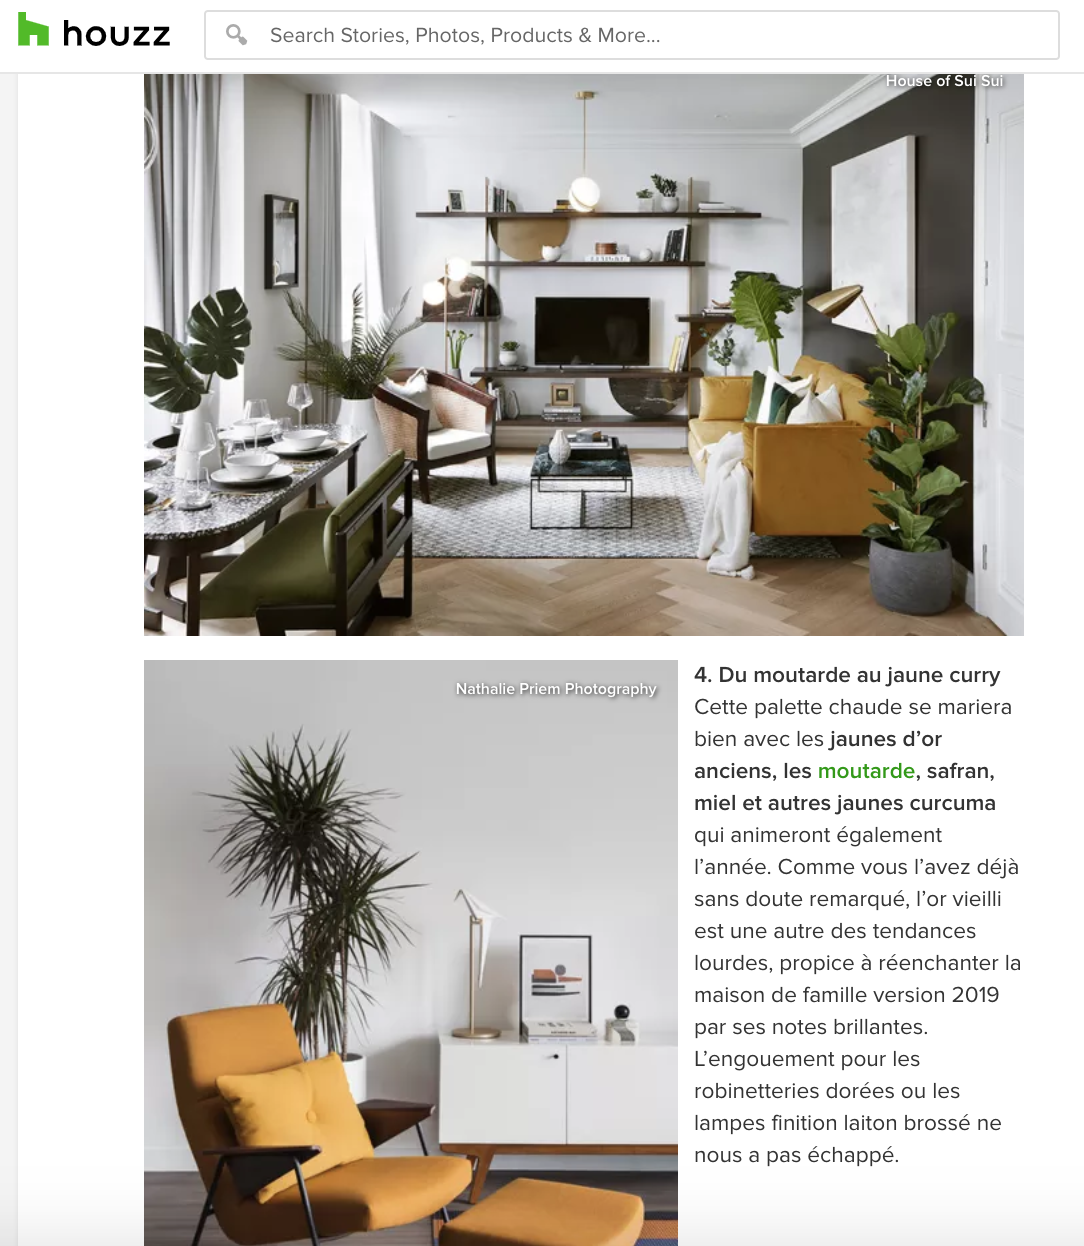 HOUZZ - HOUSE OF SUI SUI Maison & Objet Trends the 2019 Edition Tendances Melissa Bolivar 7.png